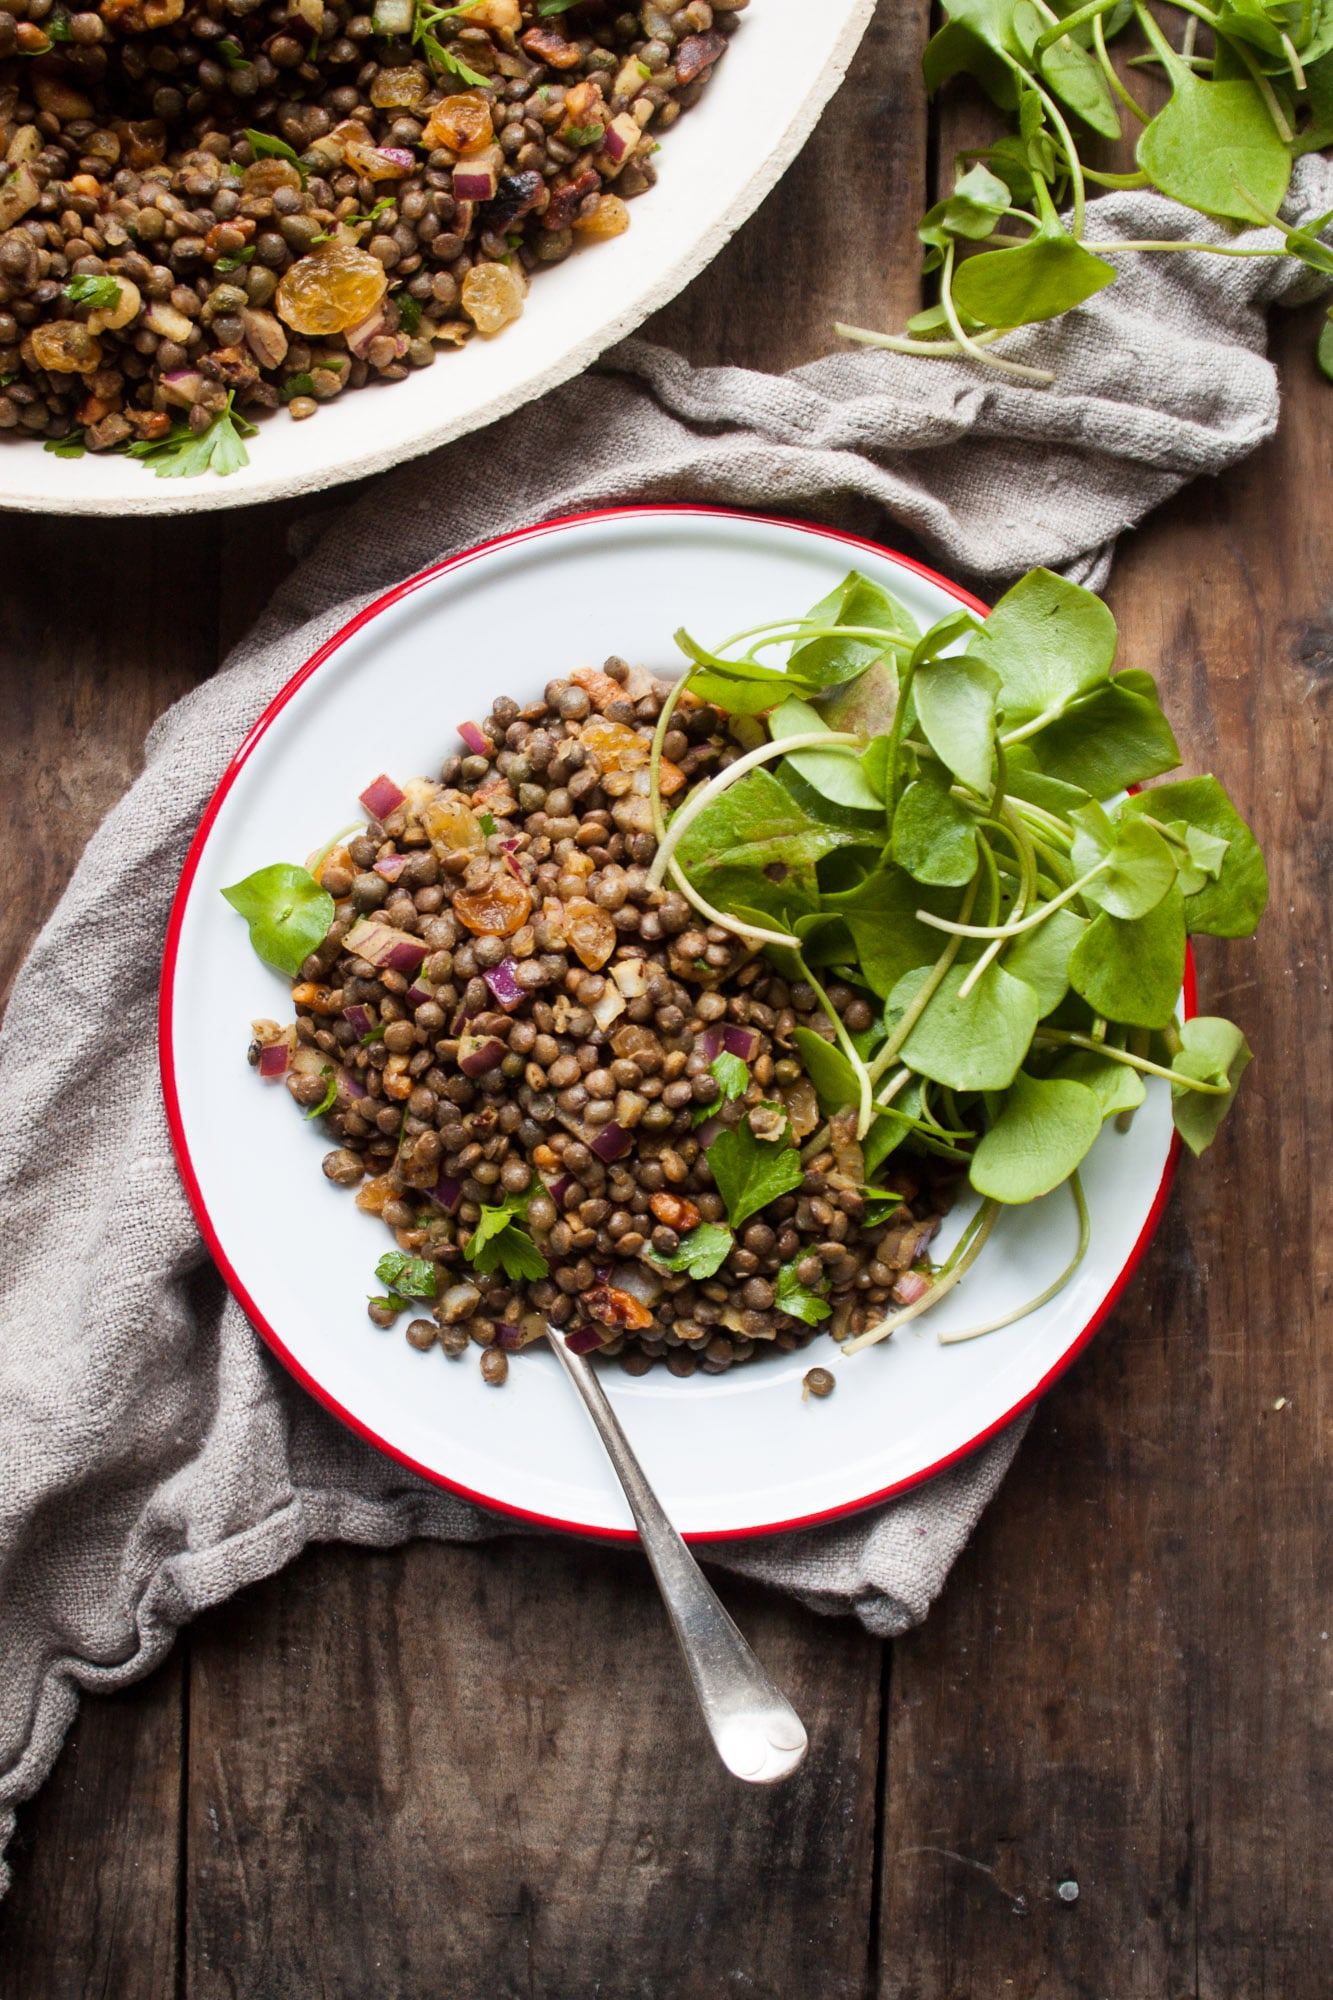 The Best Ever French Lentil Salad via In Pursuit of More